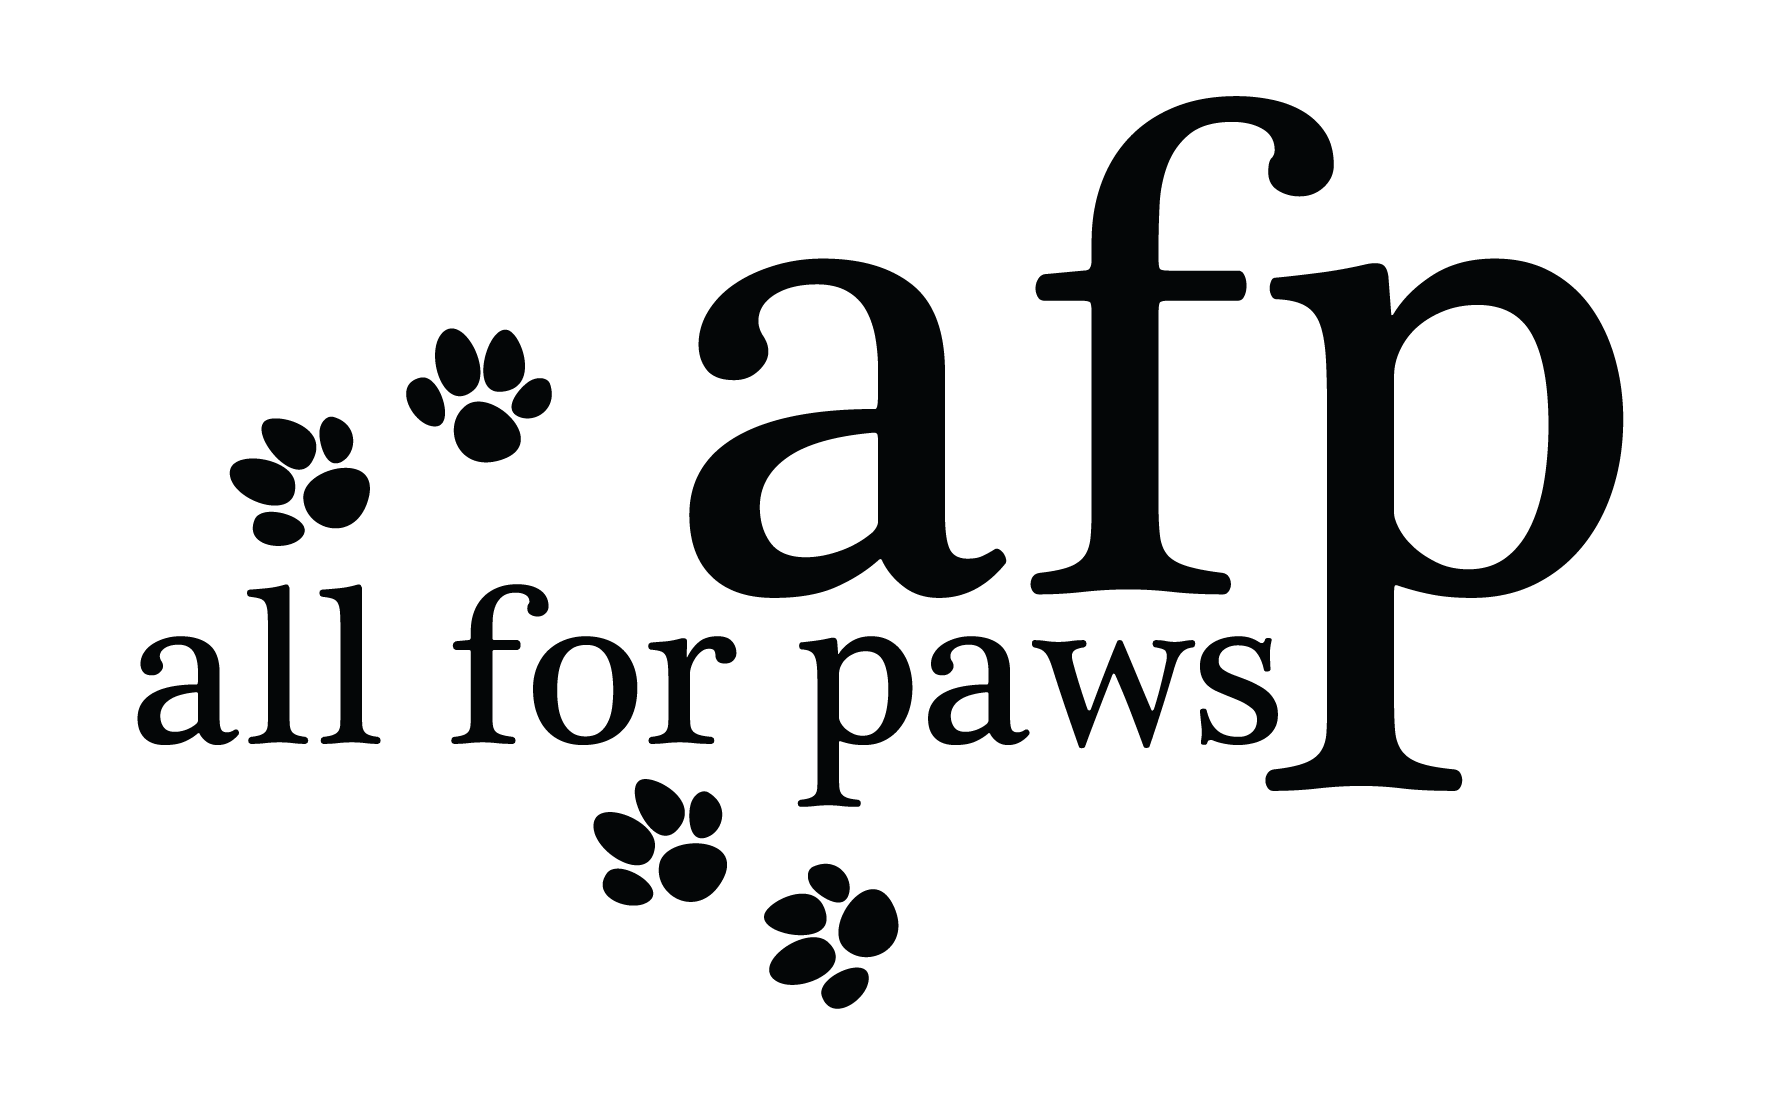 AllForPaws